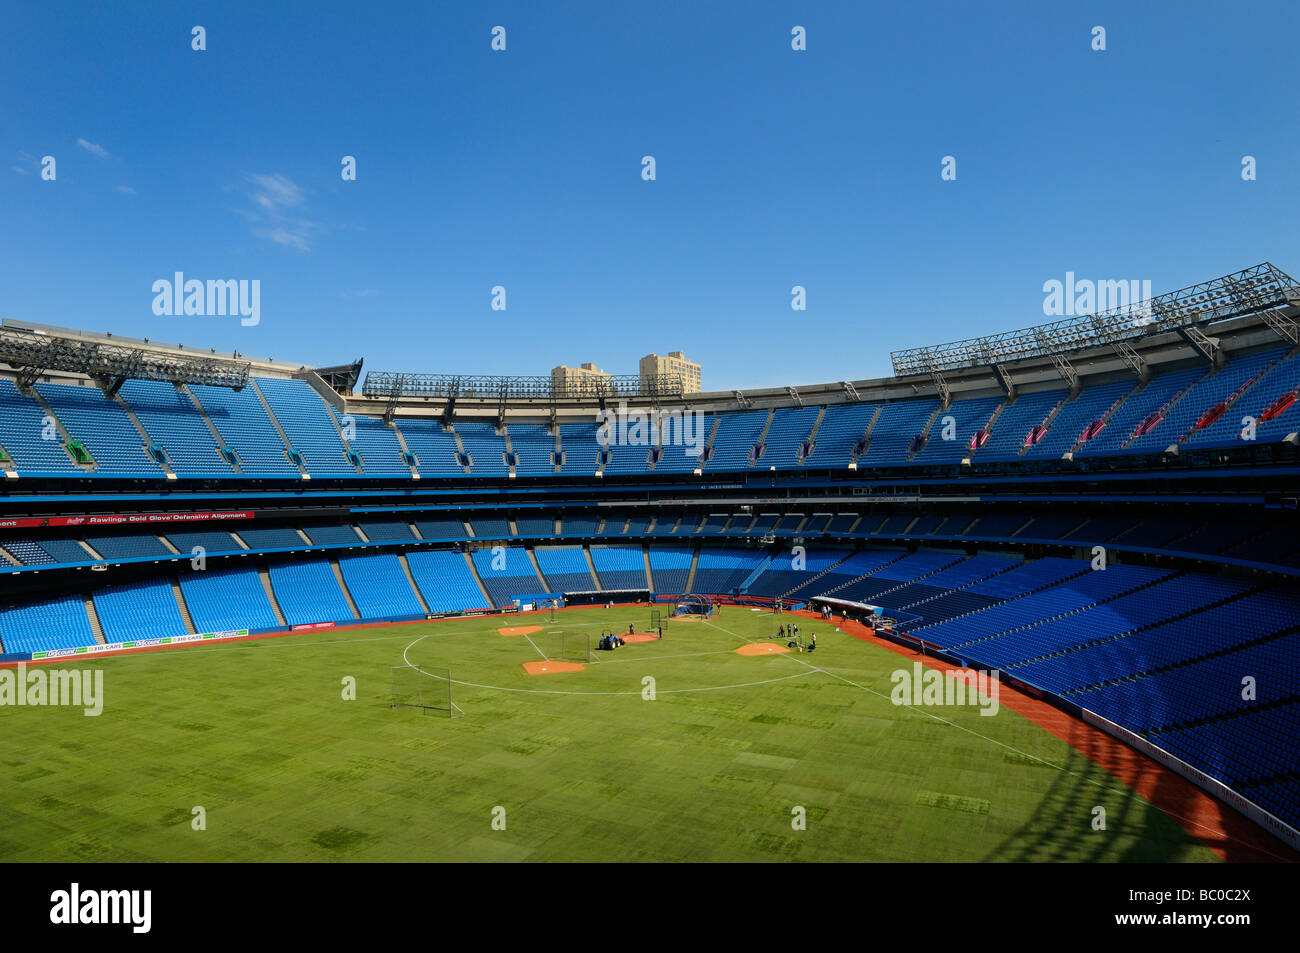 Toronto Rogers Centre SkyDome green field and empty stadium seats with roof open preparing for a baseball game - Stock Image